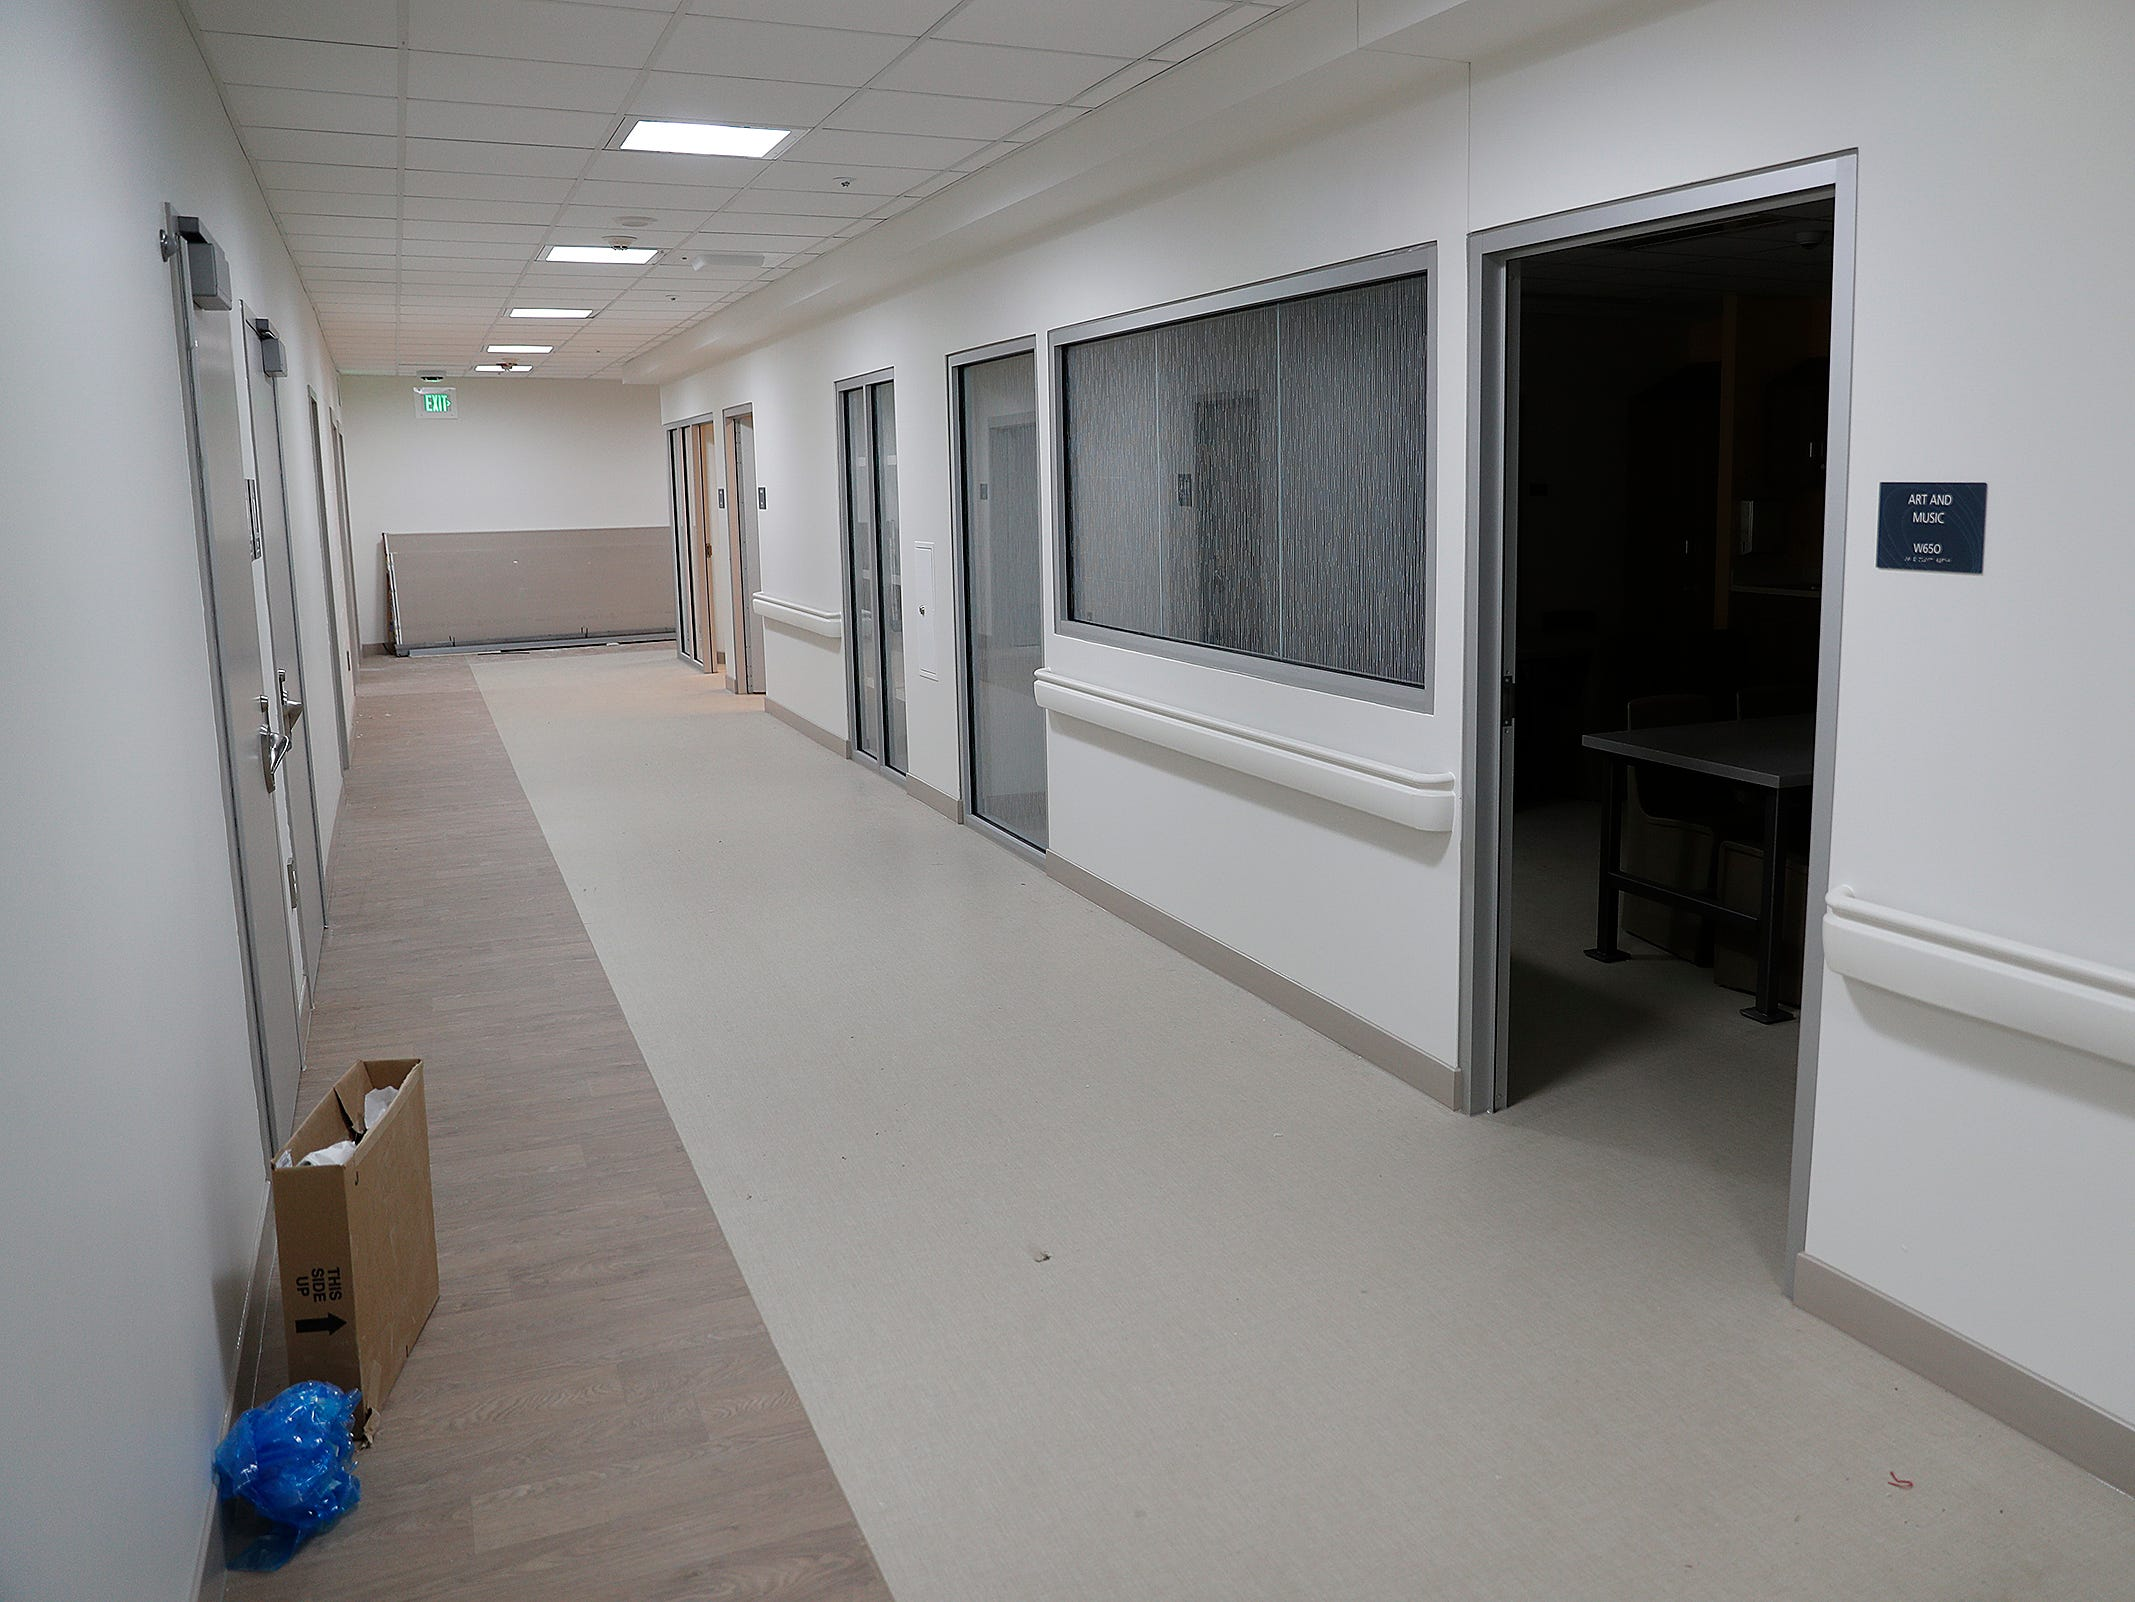 This is part of the Treatment Mall at the new NeuroDiagnostic Institute, at 5435 E 16th St., will replace LaRue Carter as the center for mental health care on Wednesday, March 13, 2019.